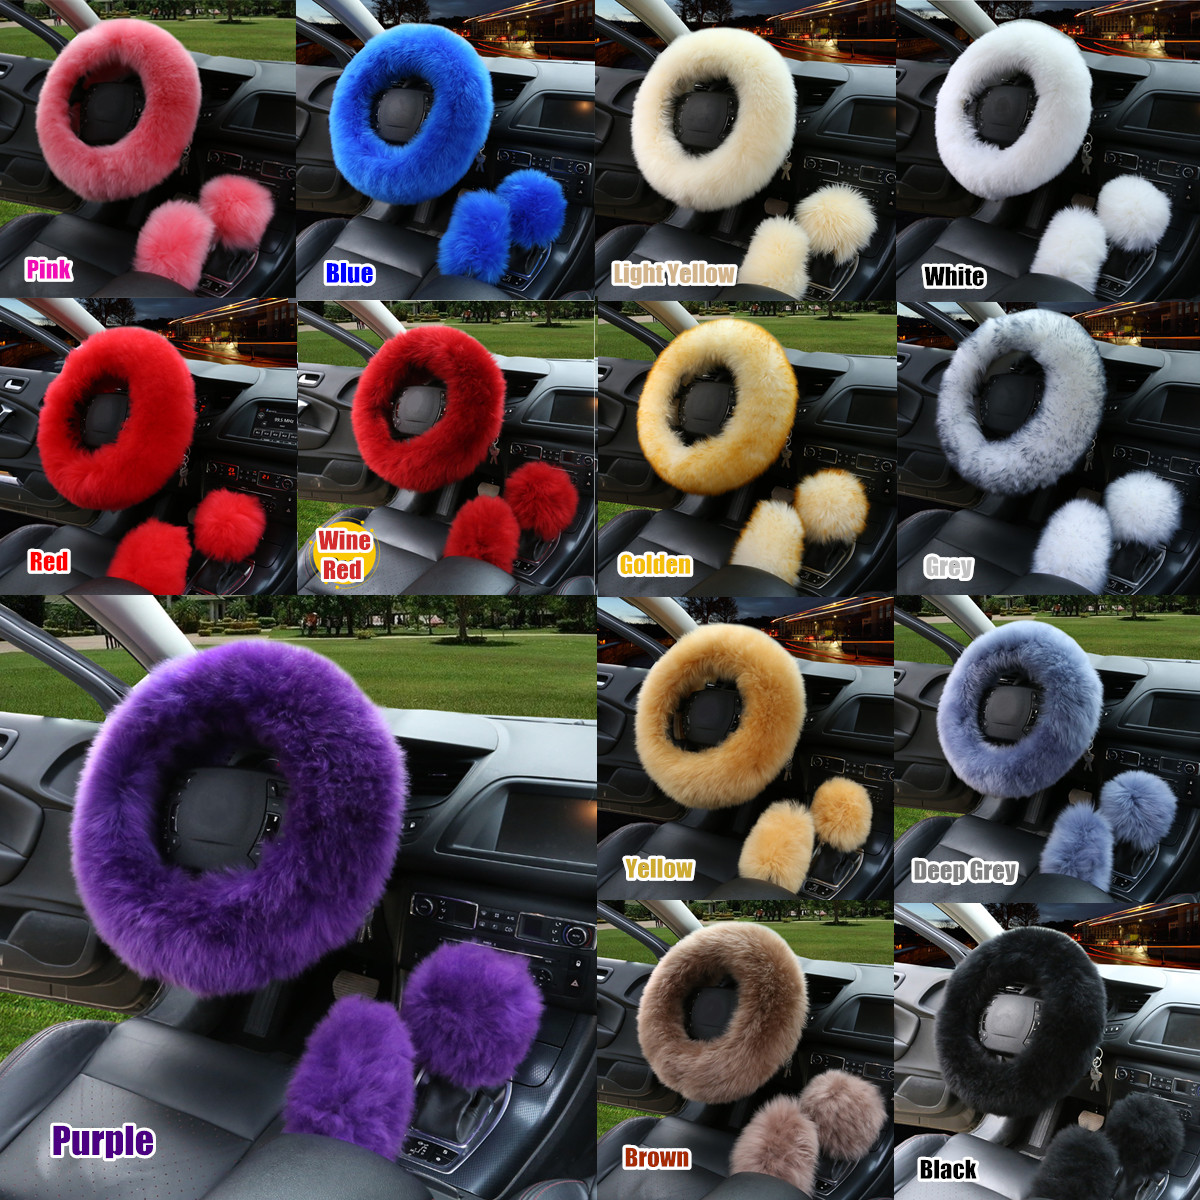 3Pcs Fashion Wool Plush Non-slip Car Steering Wheel Cover Protector + Gear Knob Shifter Parking Brake Cover Set Car Accessories Decor Gift 14.2""